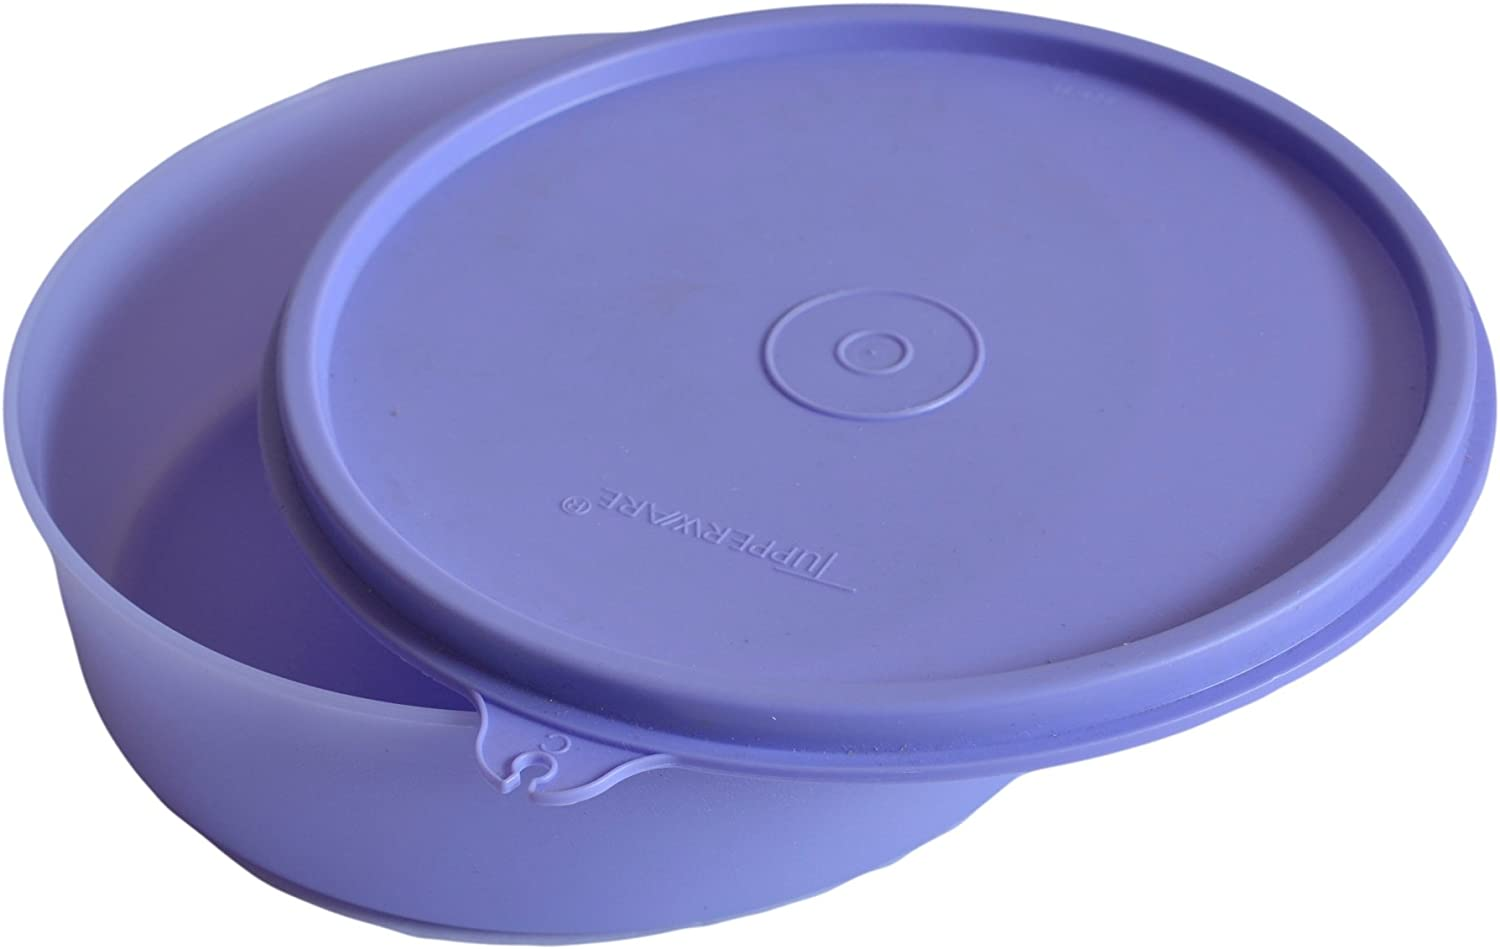 New Topics on TV Shipping Free Tupperware Large Handy Bowl Colors Vary May